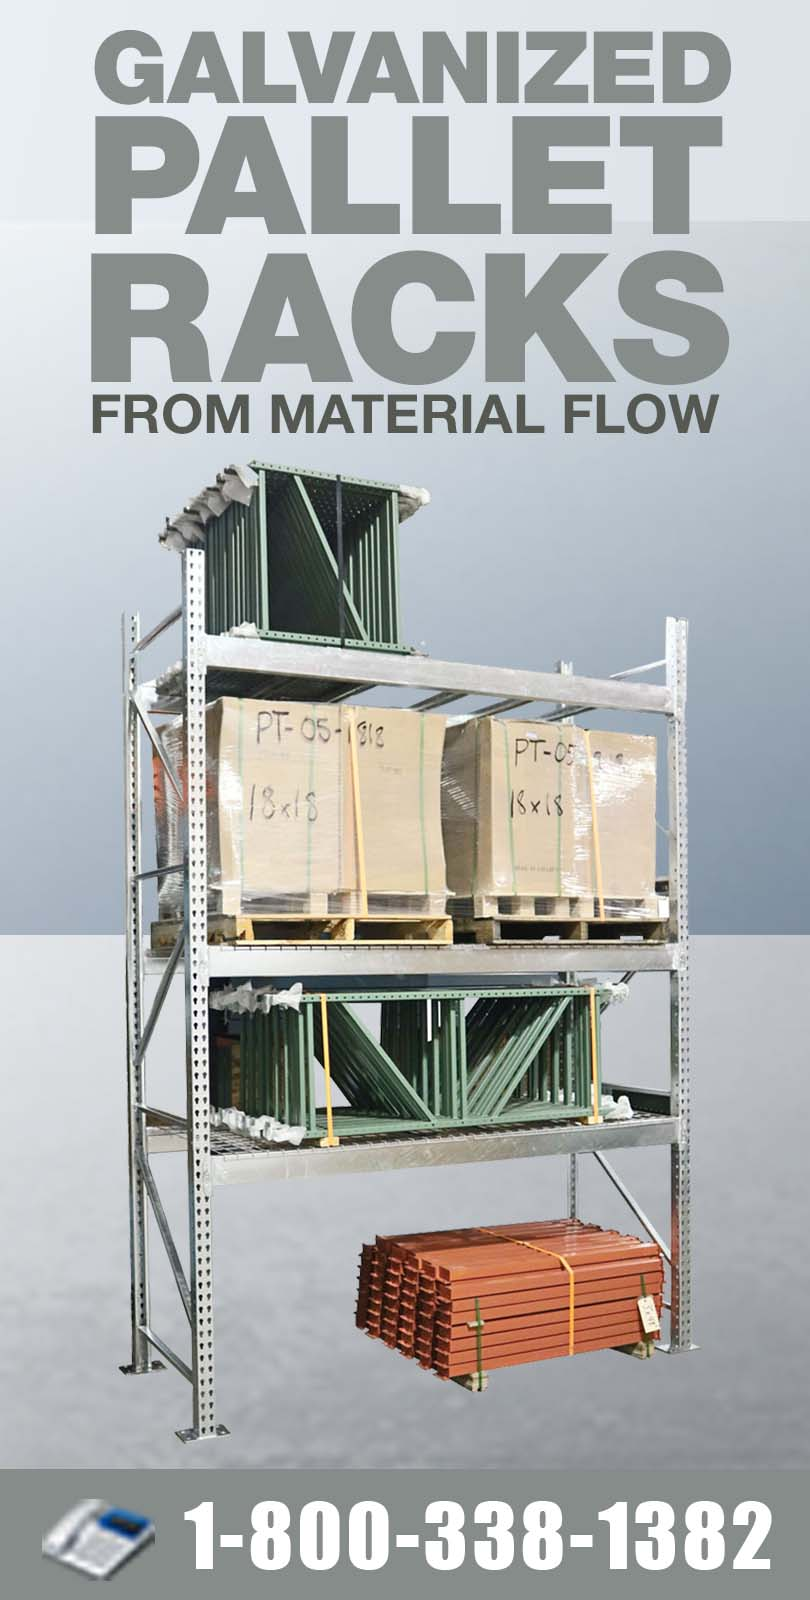 Stromberg Galvanized Pallet Racking from Material Flow